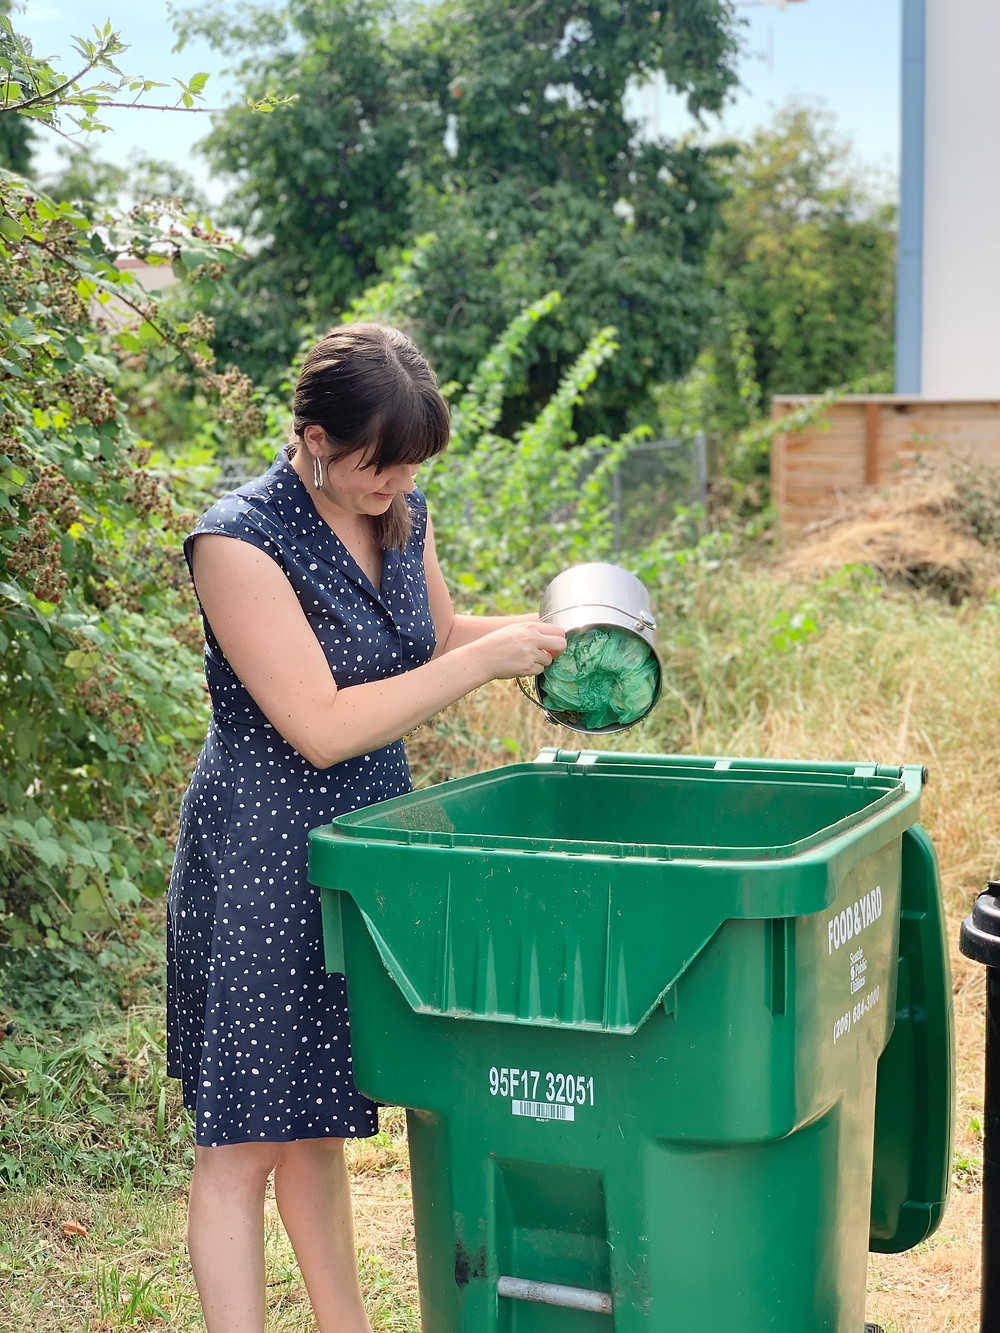 Jenica dumping her compost pale into a curbside green waste bin